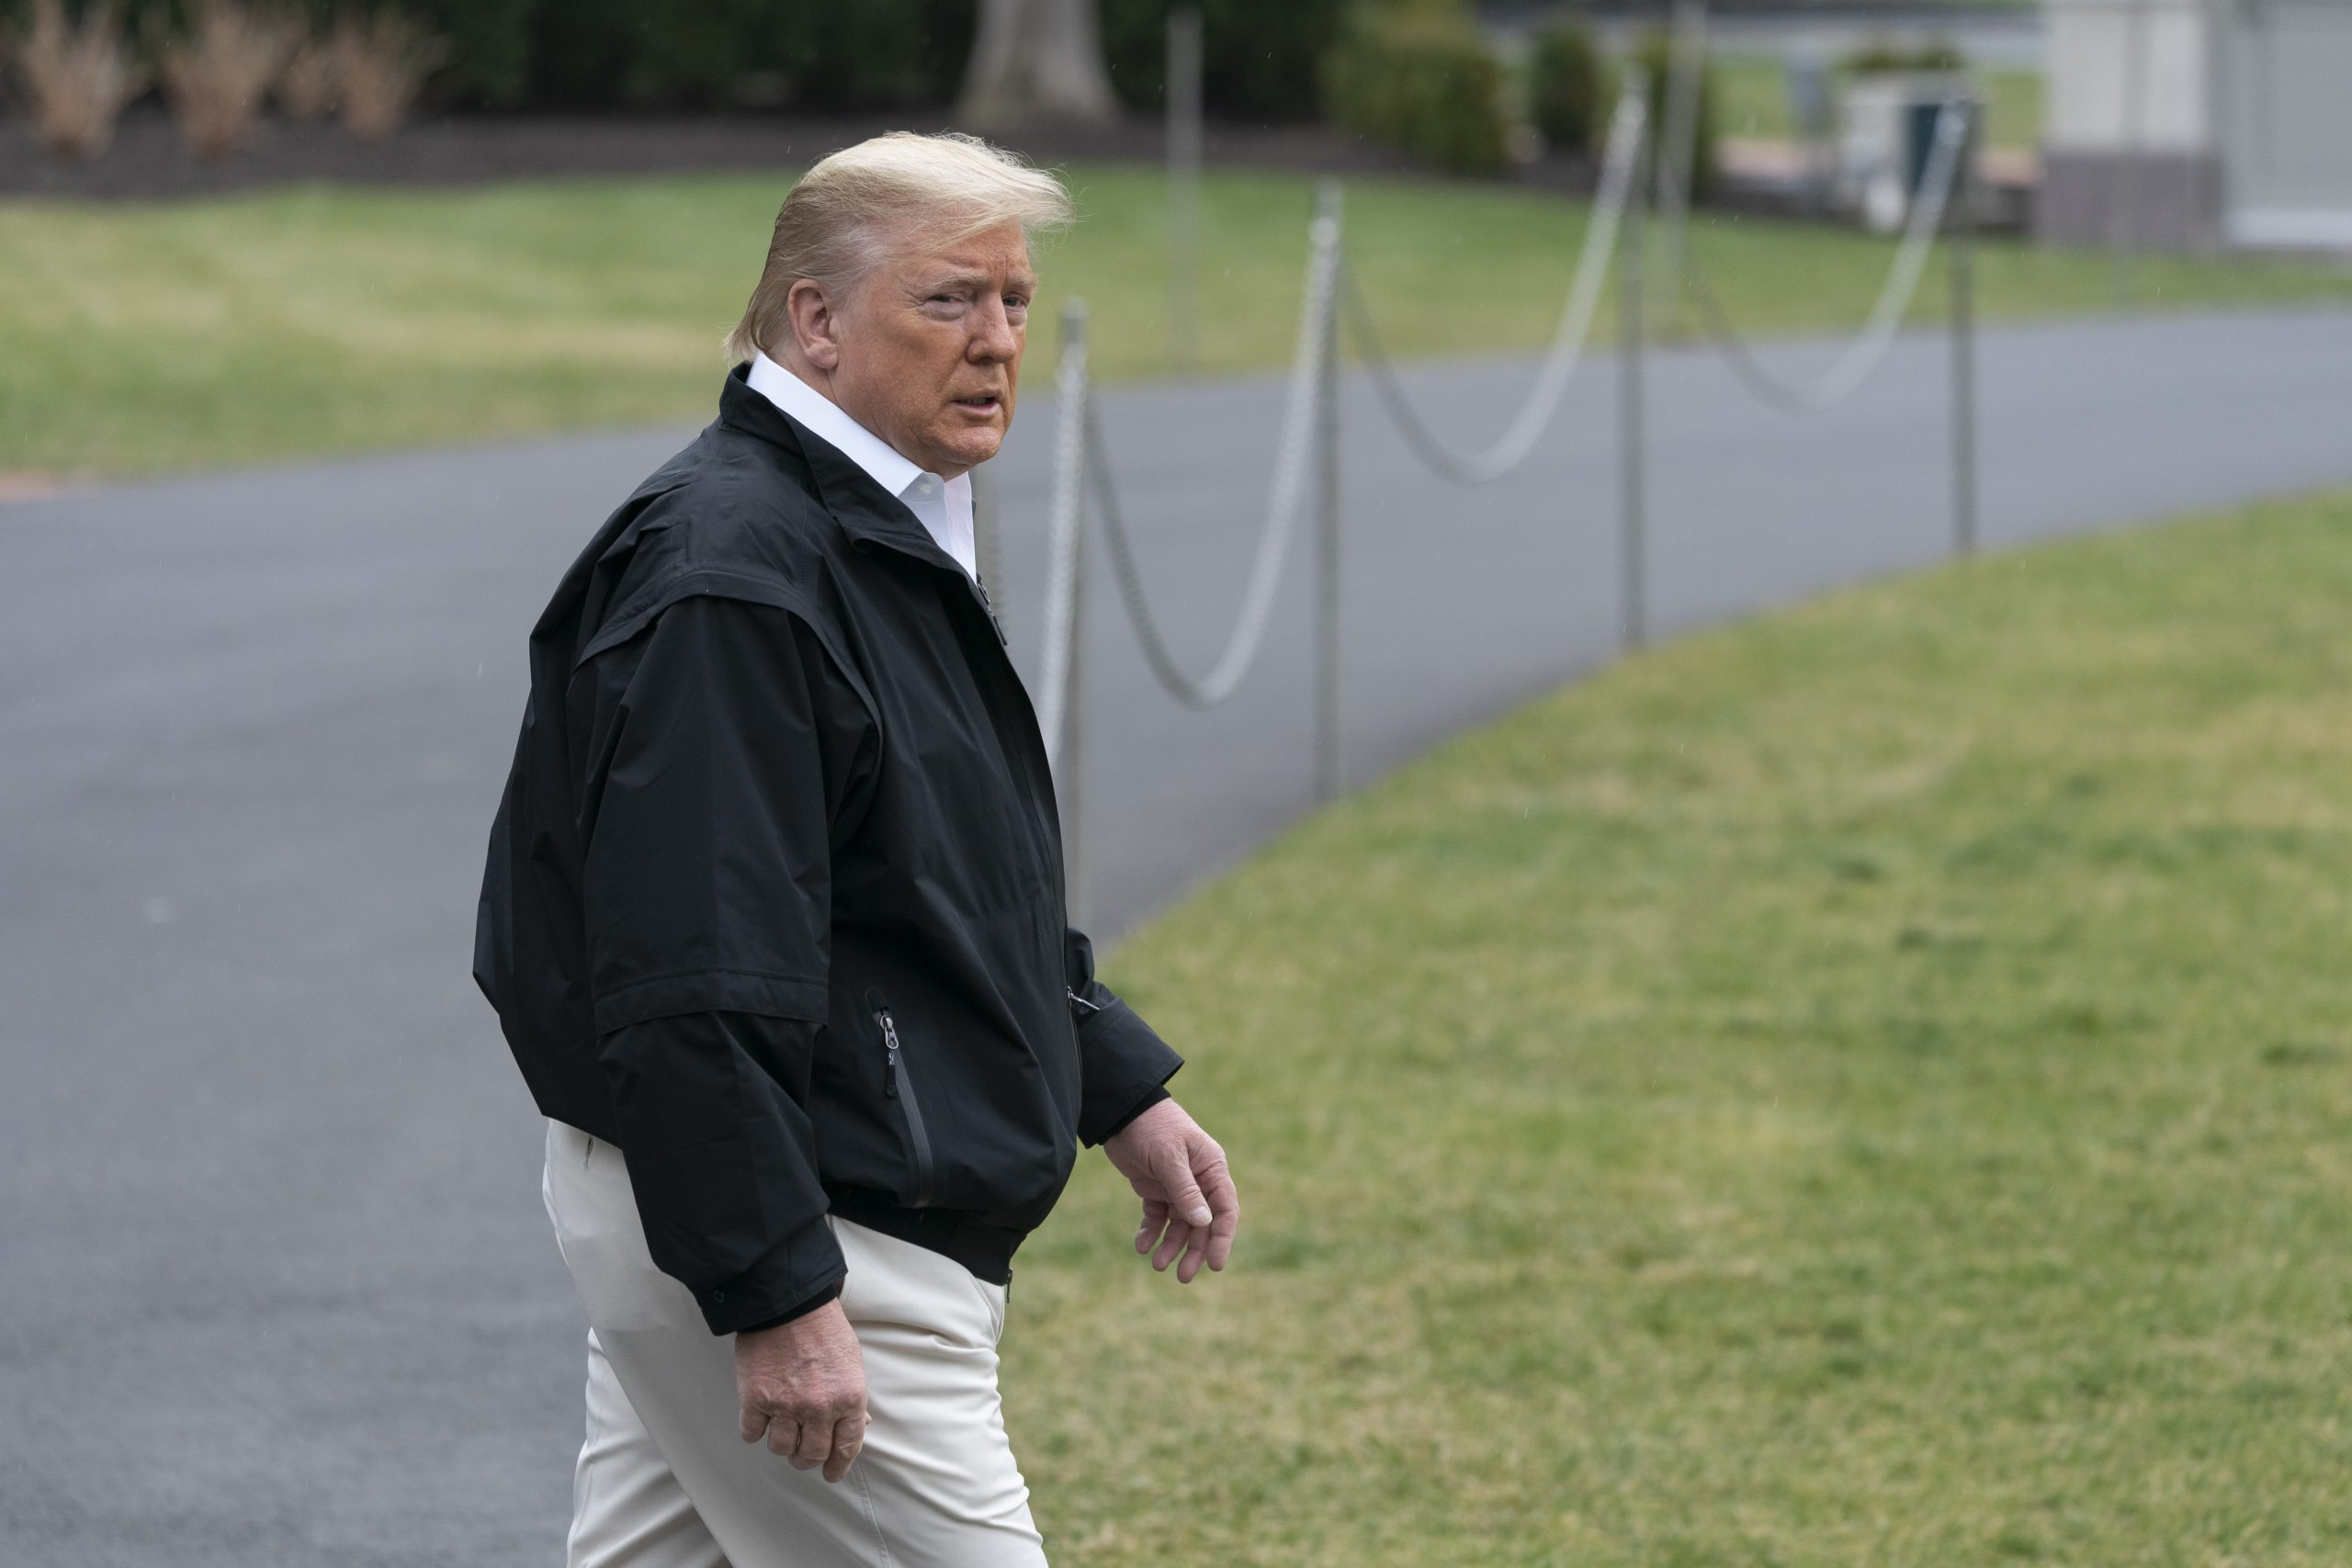 trump heads to tour tornado damage in nashville